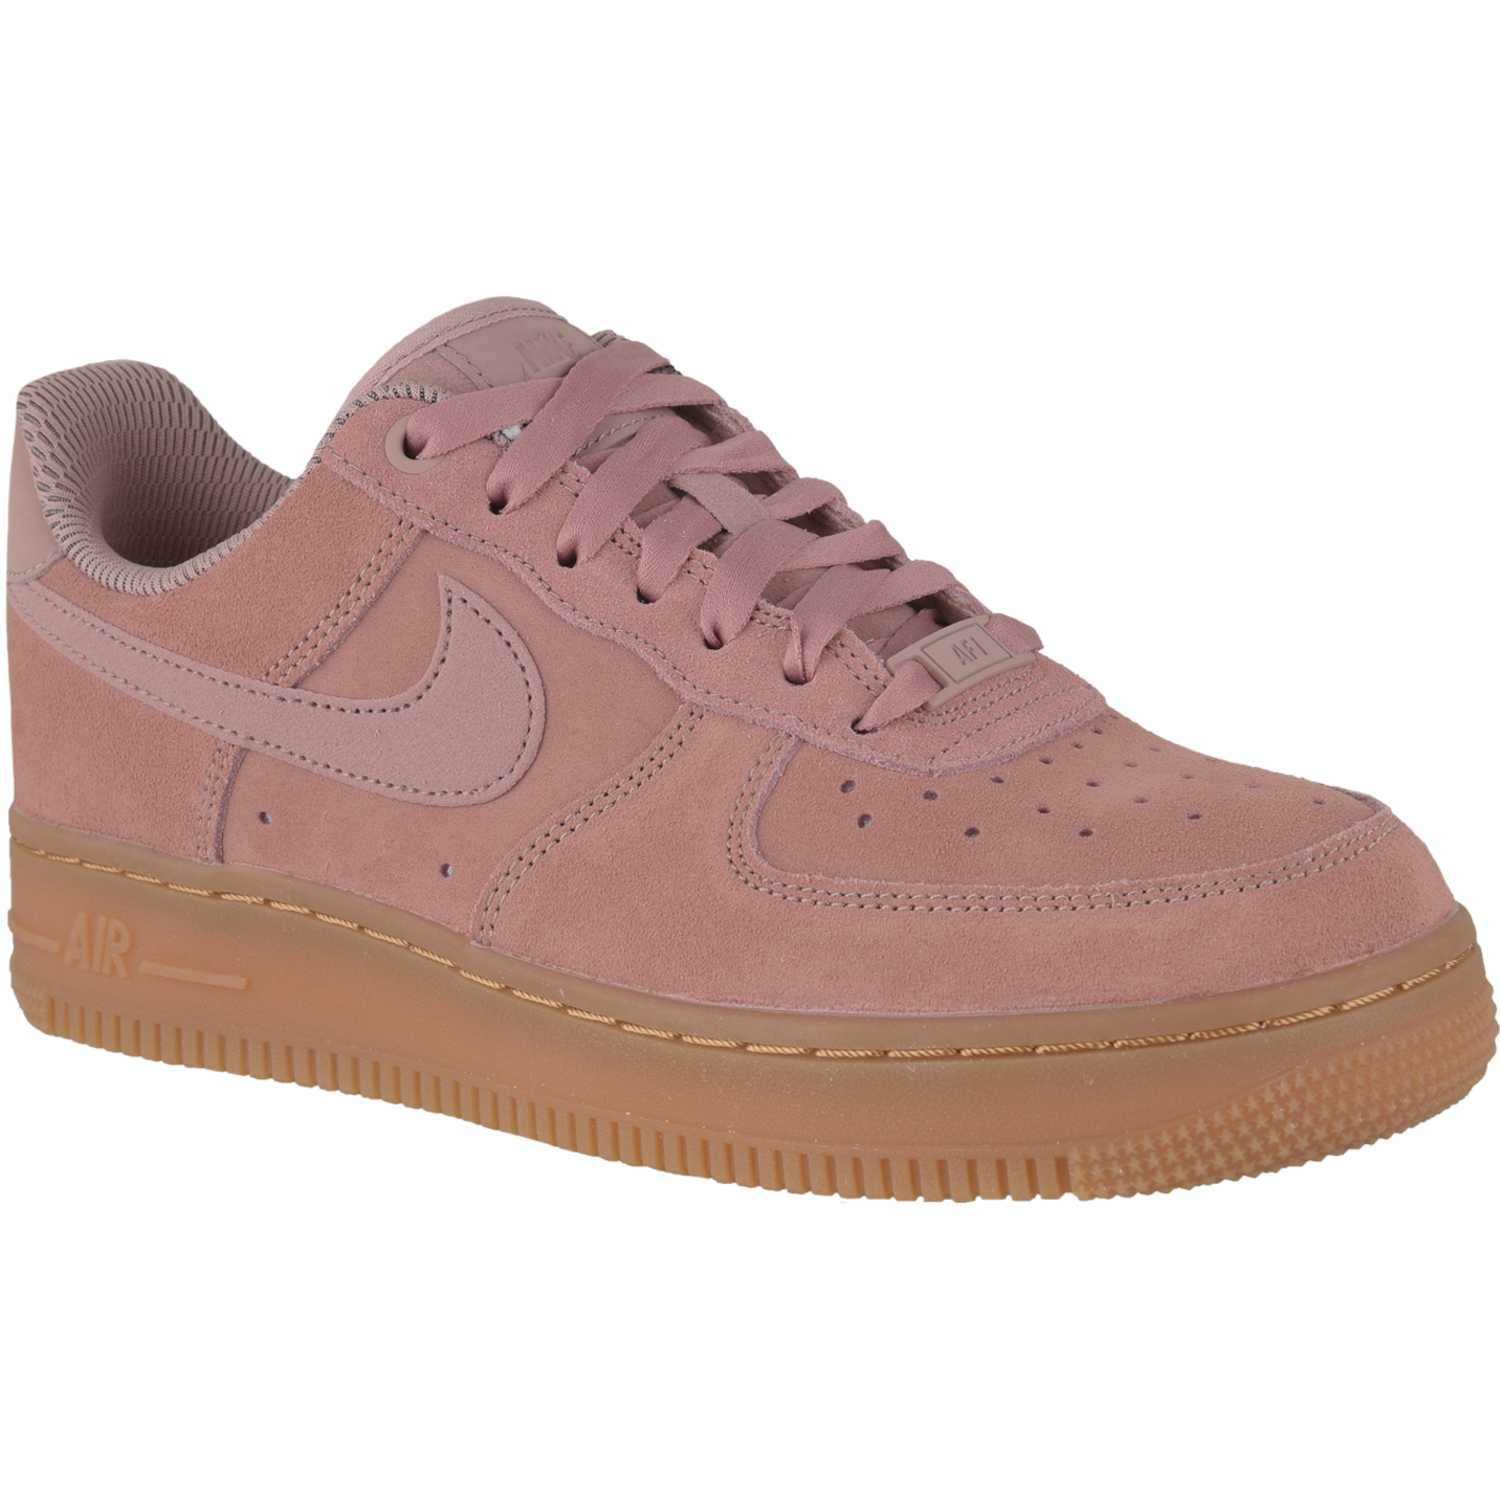 Nike wmns air force 1 07 se Rosado / marrón Walking